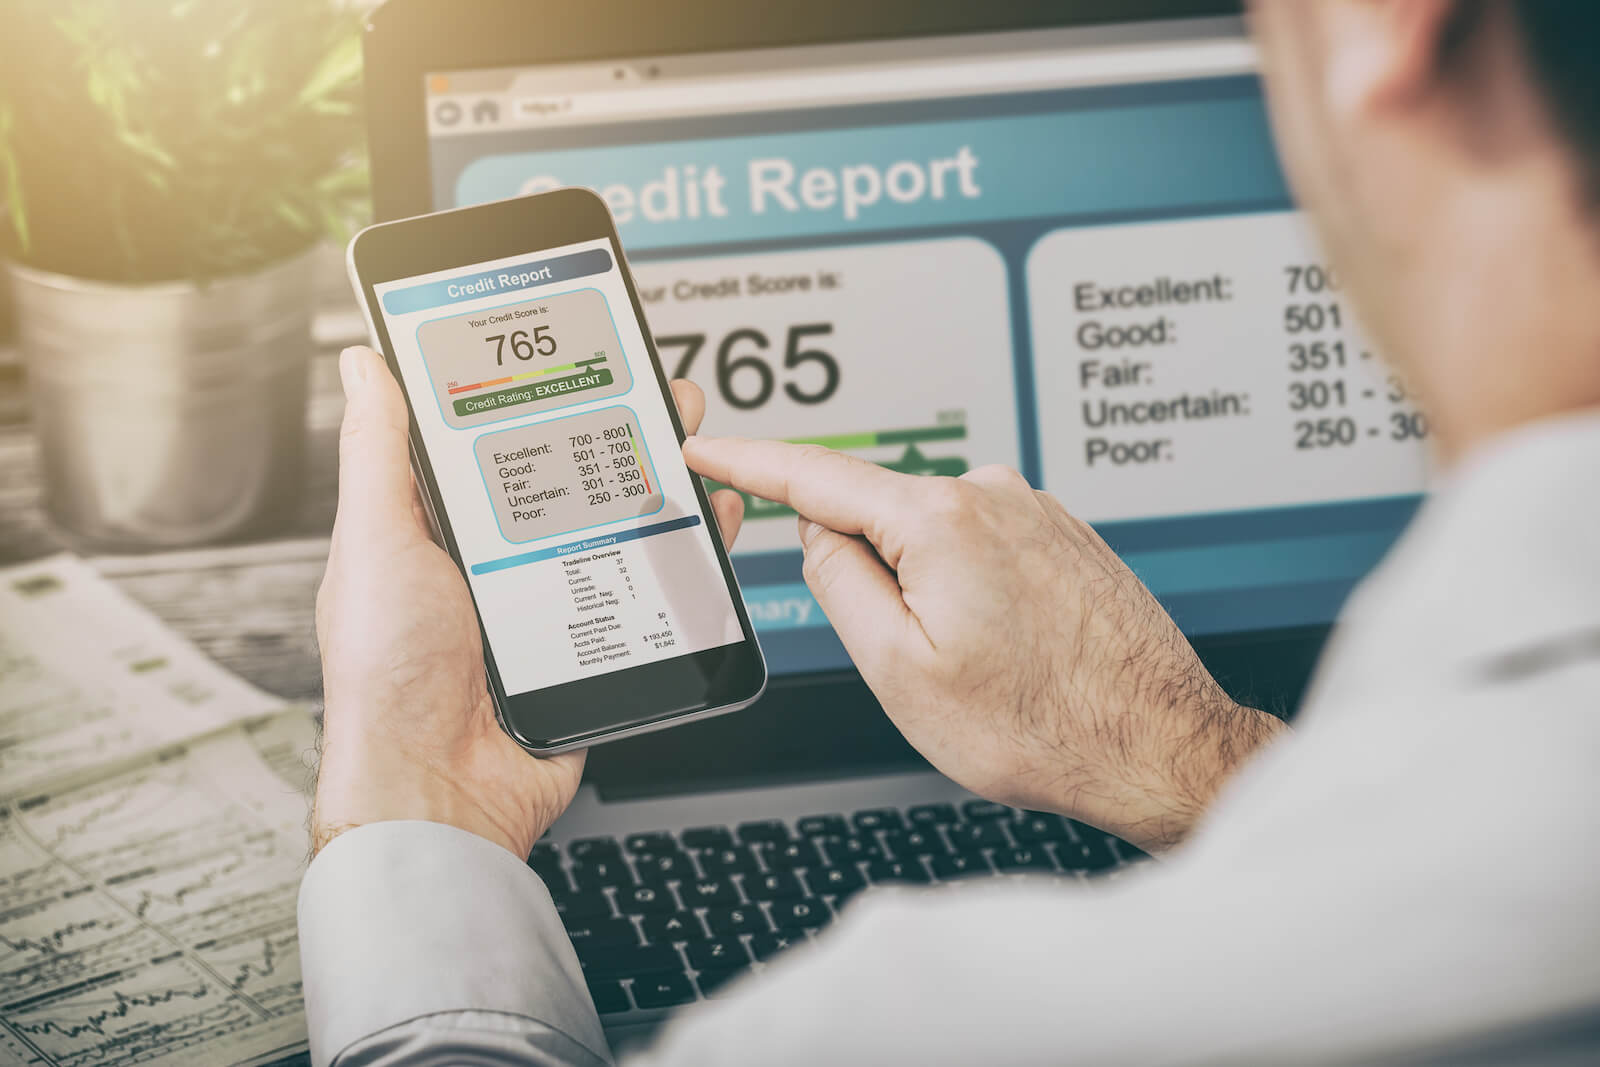 How to build your credit score with the right habits